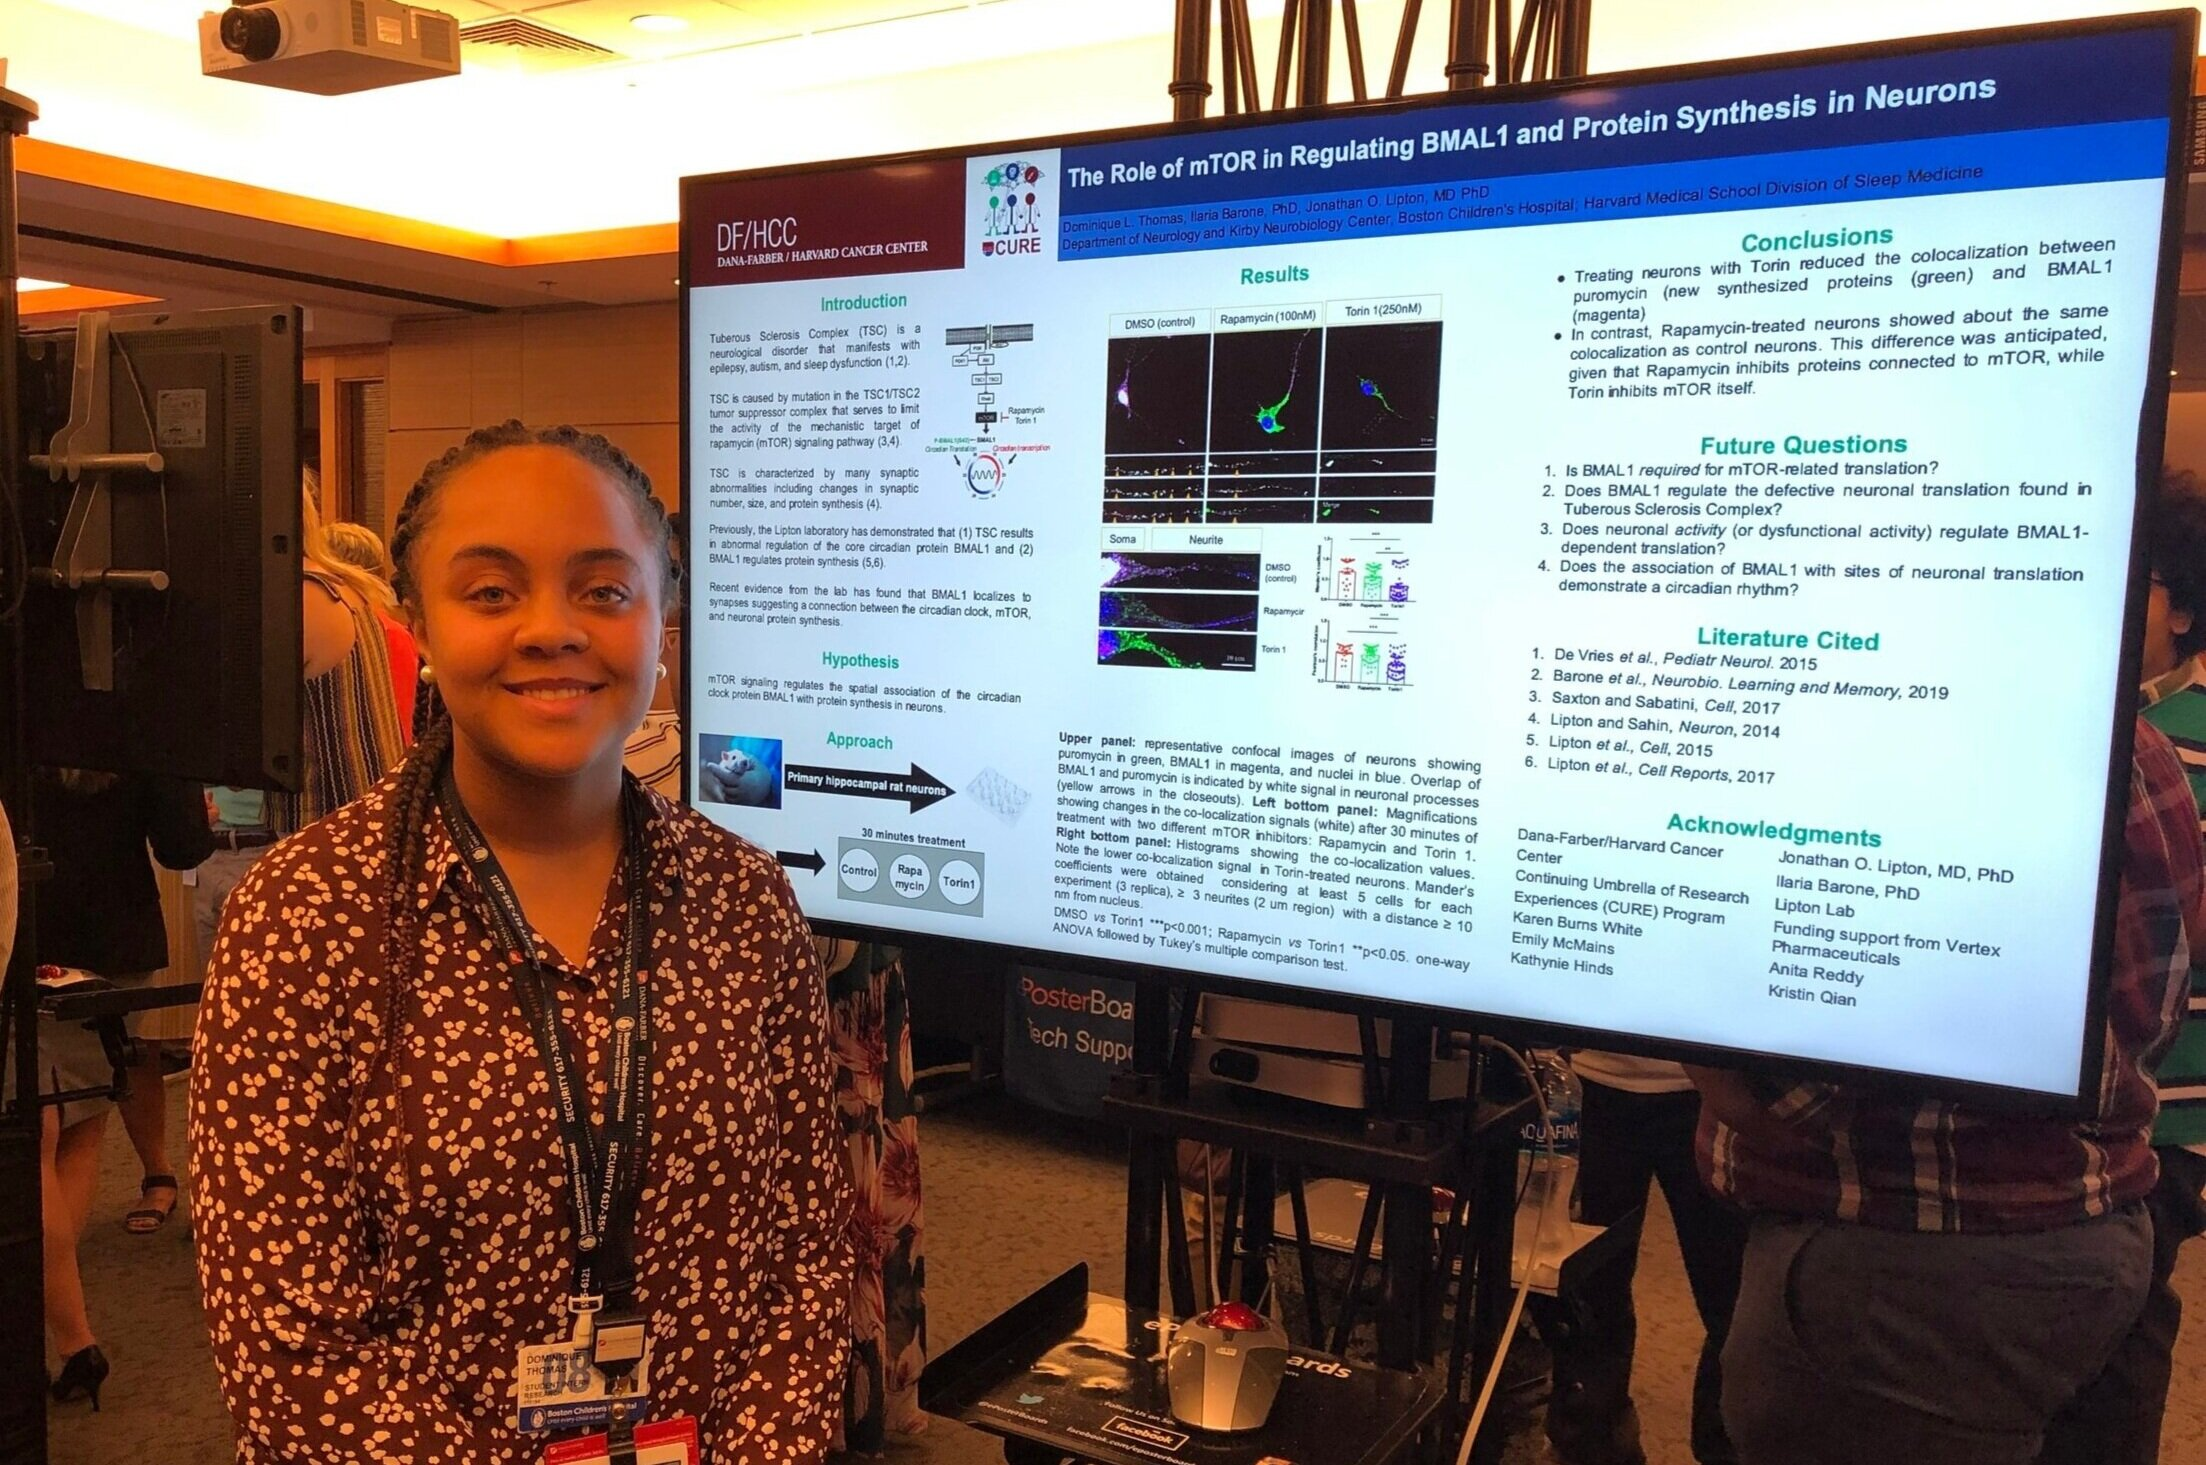 """August 2019 - Dominique, one of our summer high school interns, presented her project titled """"The Role of mTOR in Regulating BMAL1 and Protein Synthesis in Neurons"""" at the 2019 Dana-Farber CURE Digital Poster session."""